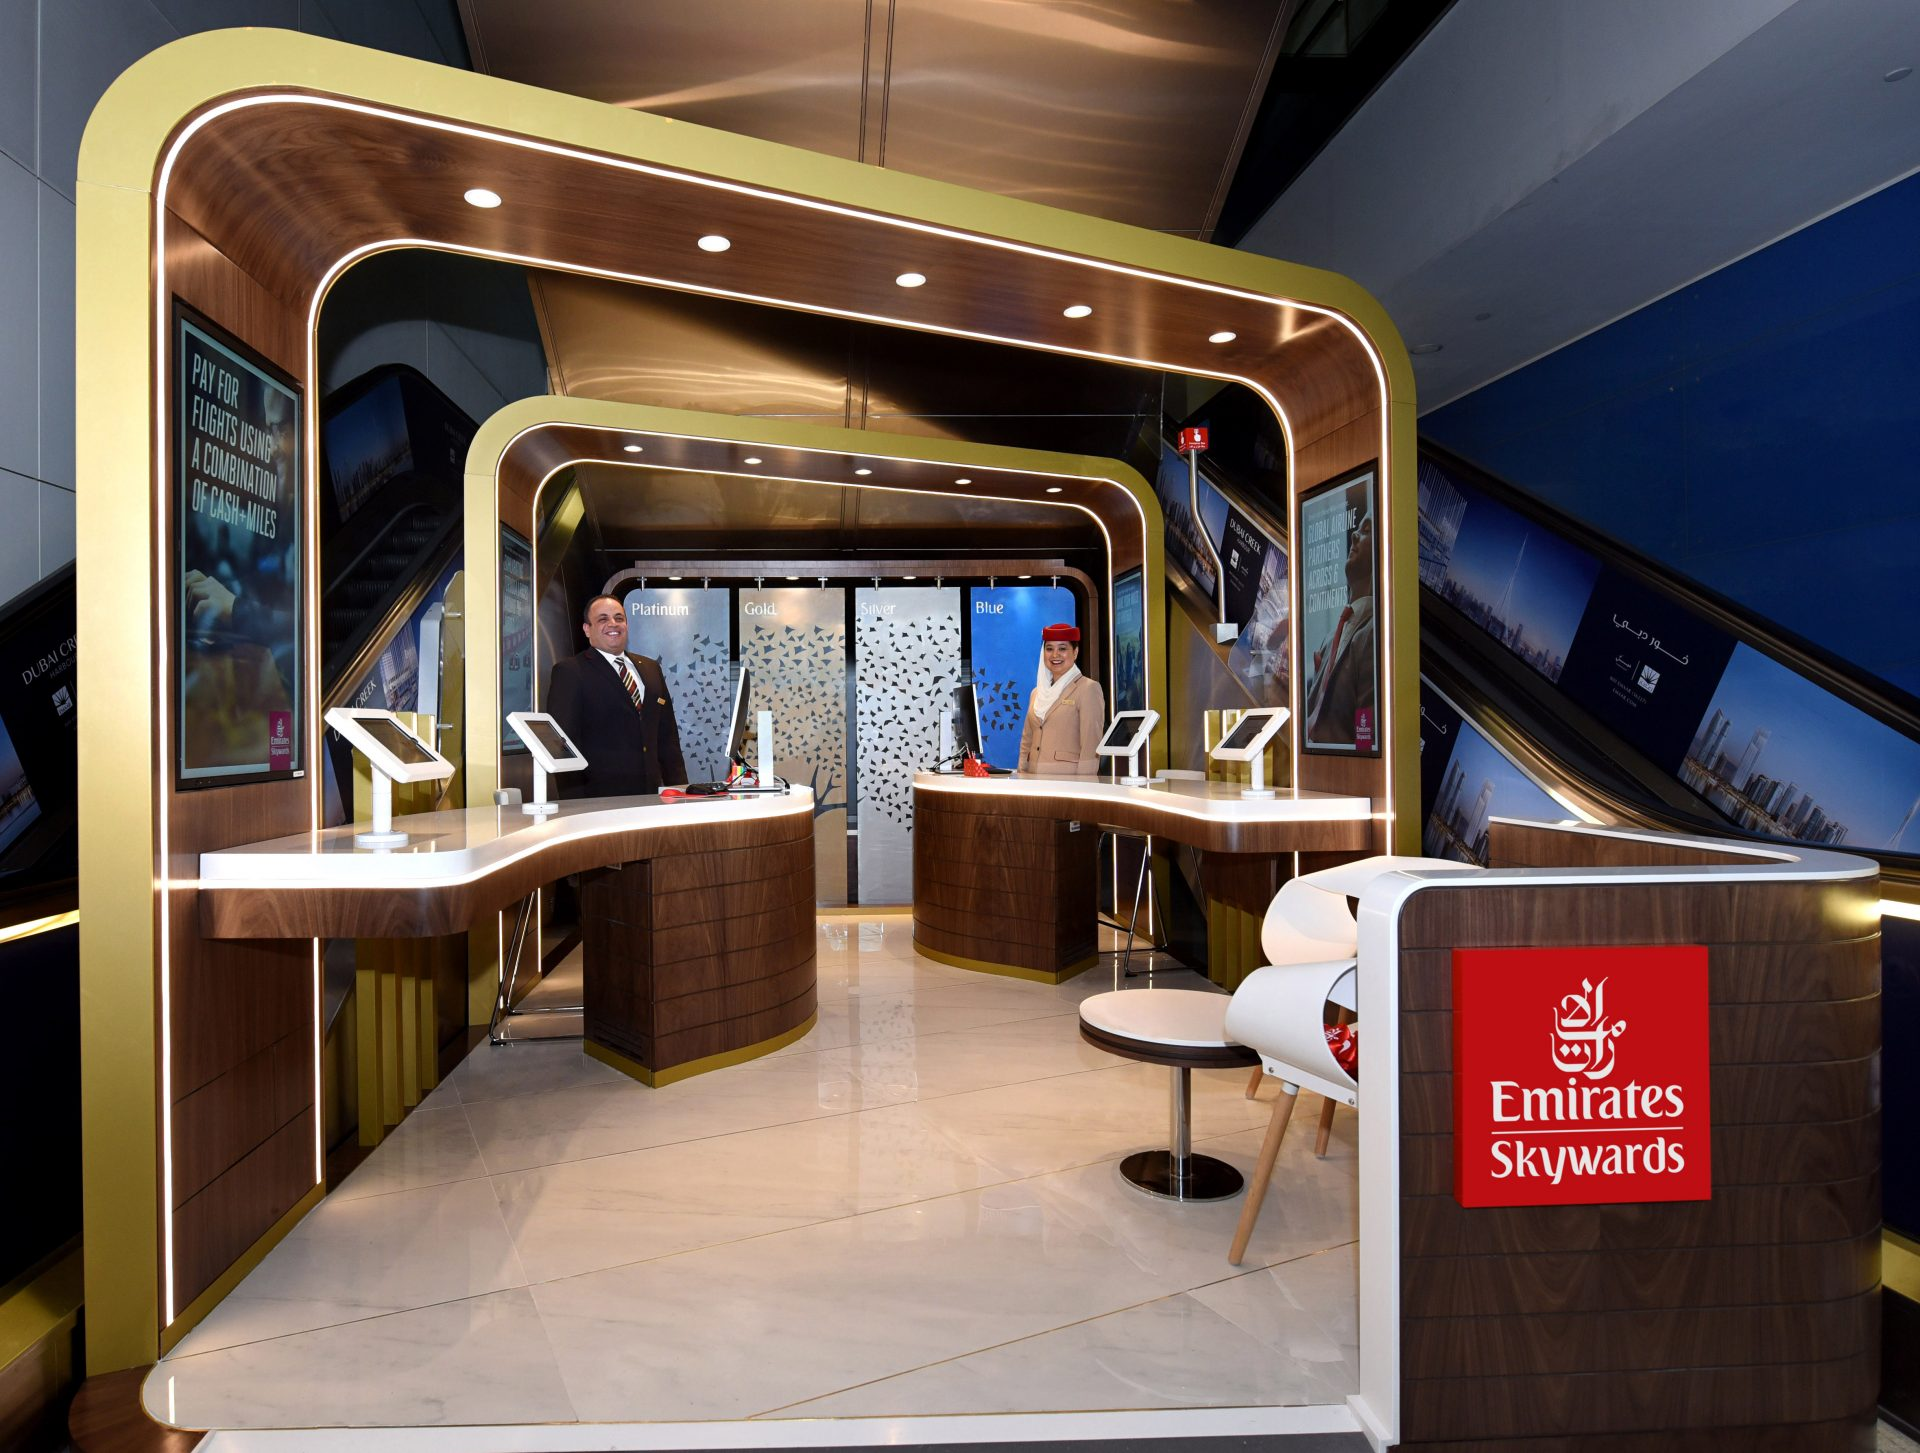 Emirates Skywards opens new one-stop centre at Dubai International